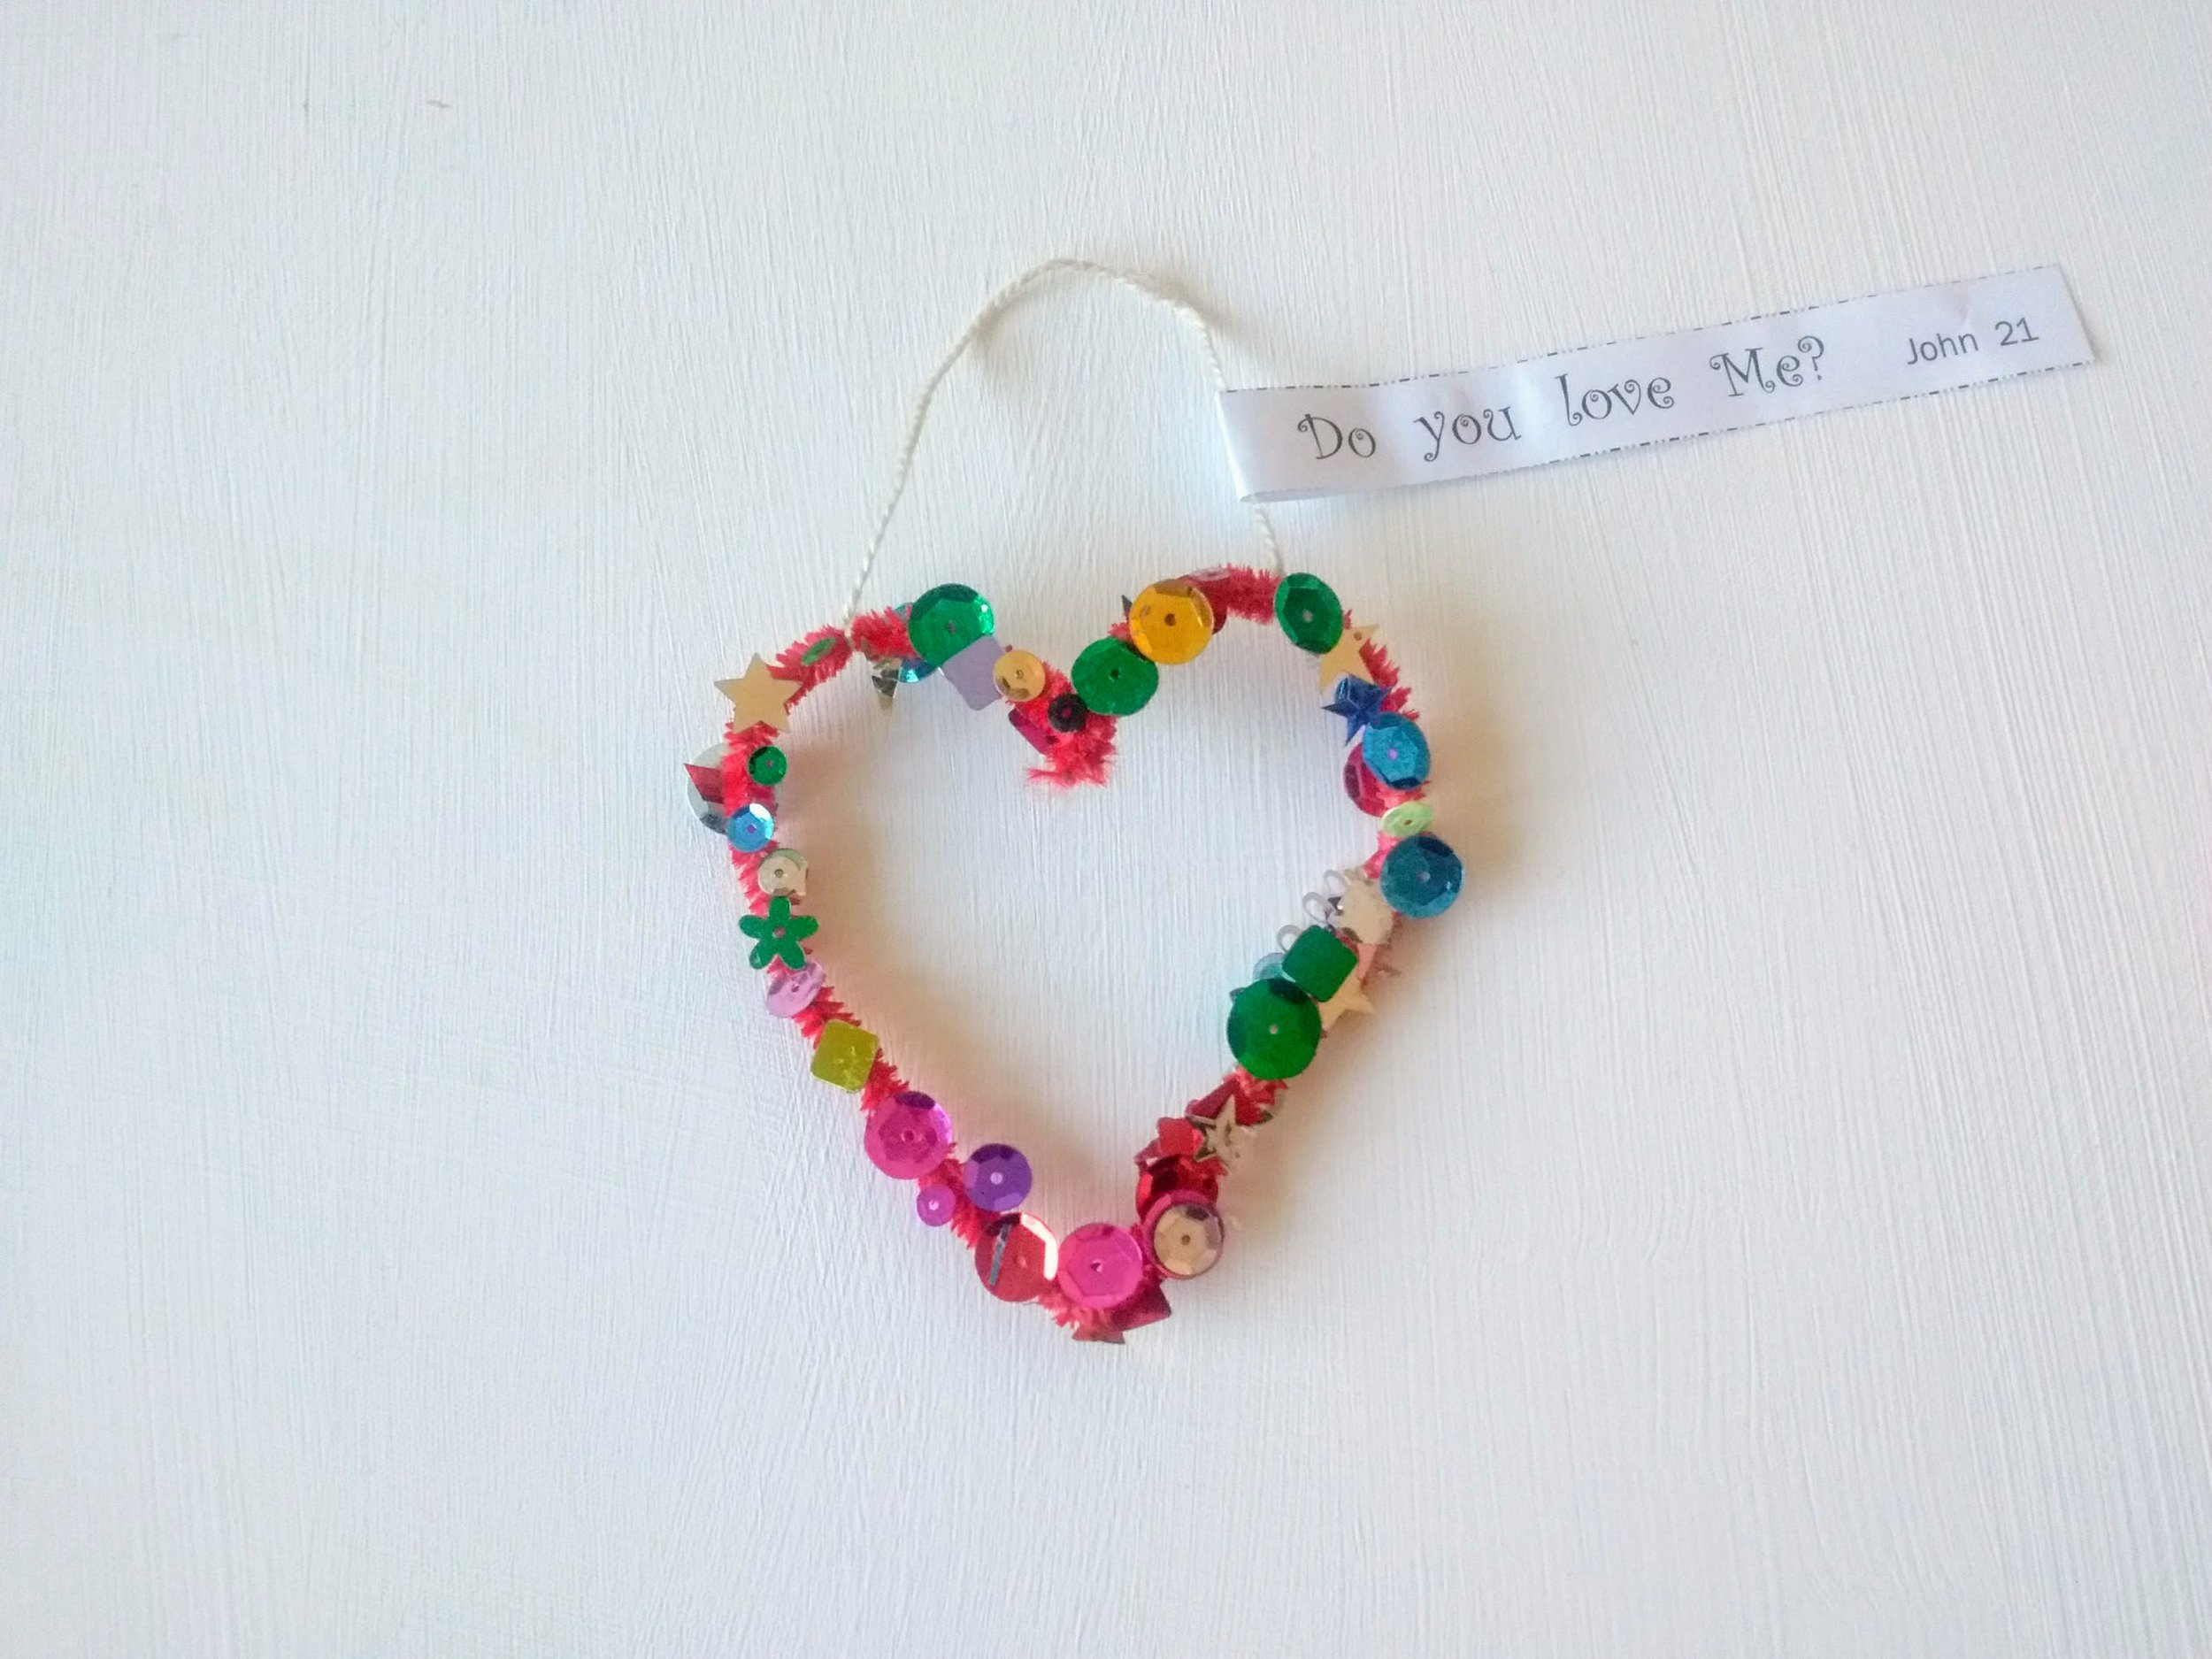 Pipe-cleaner hearts_Do you love me?